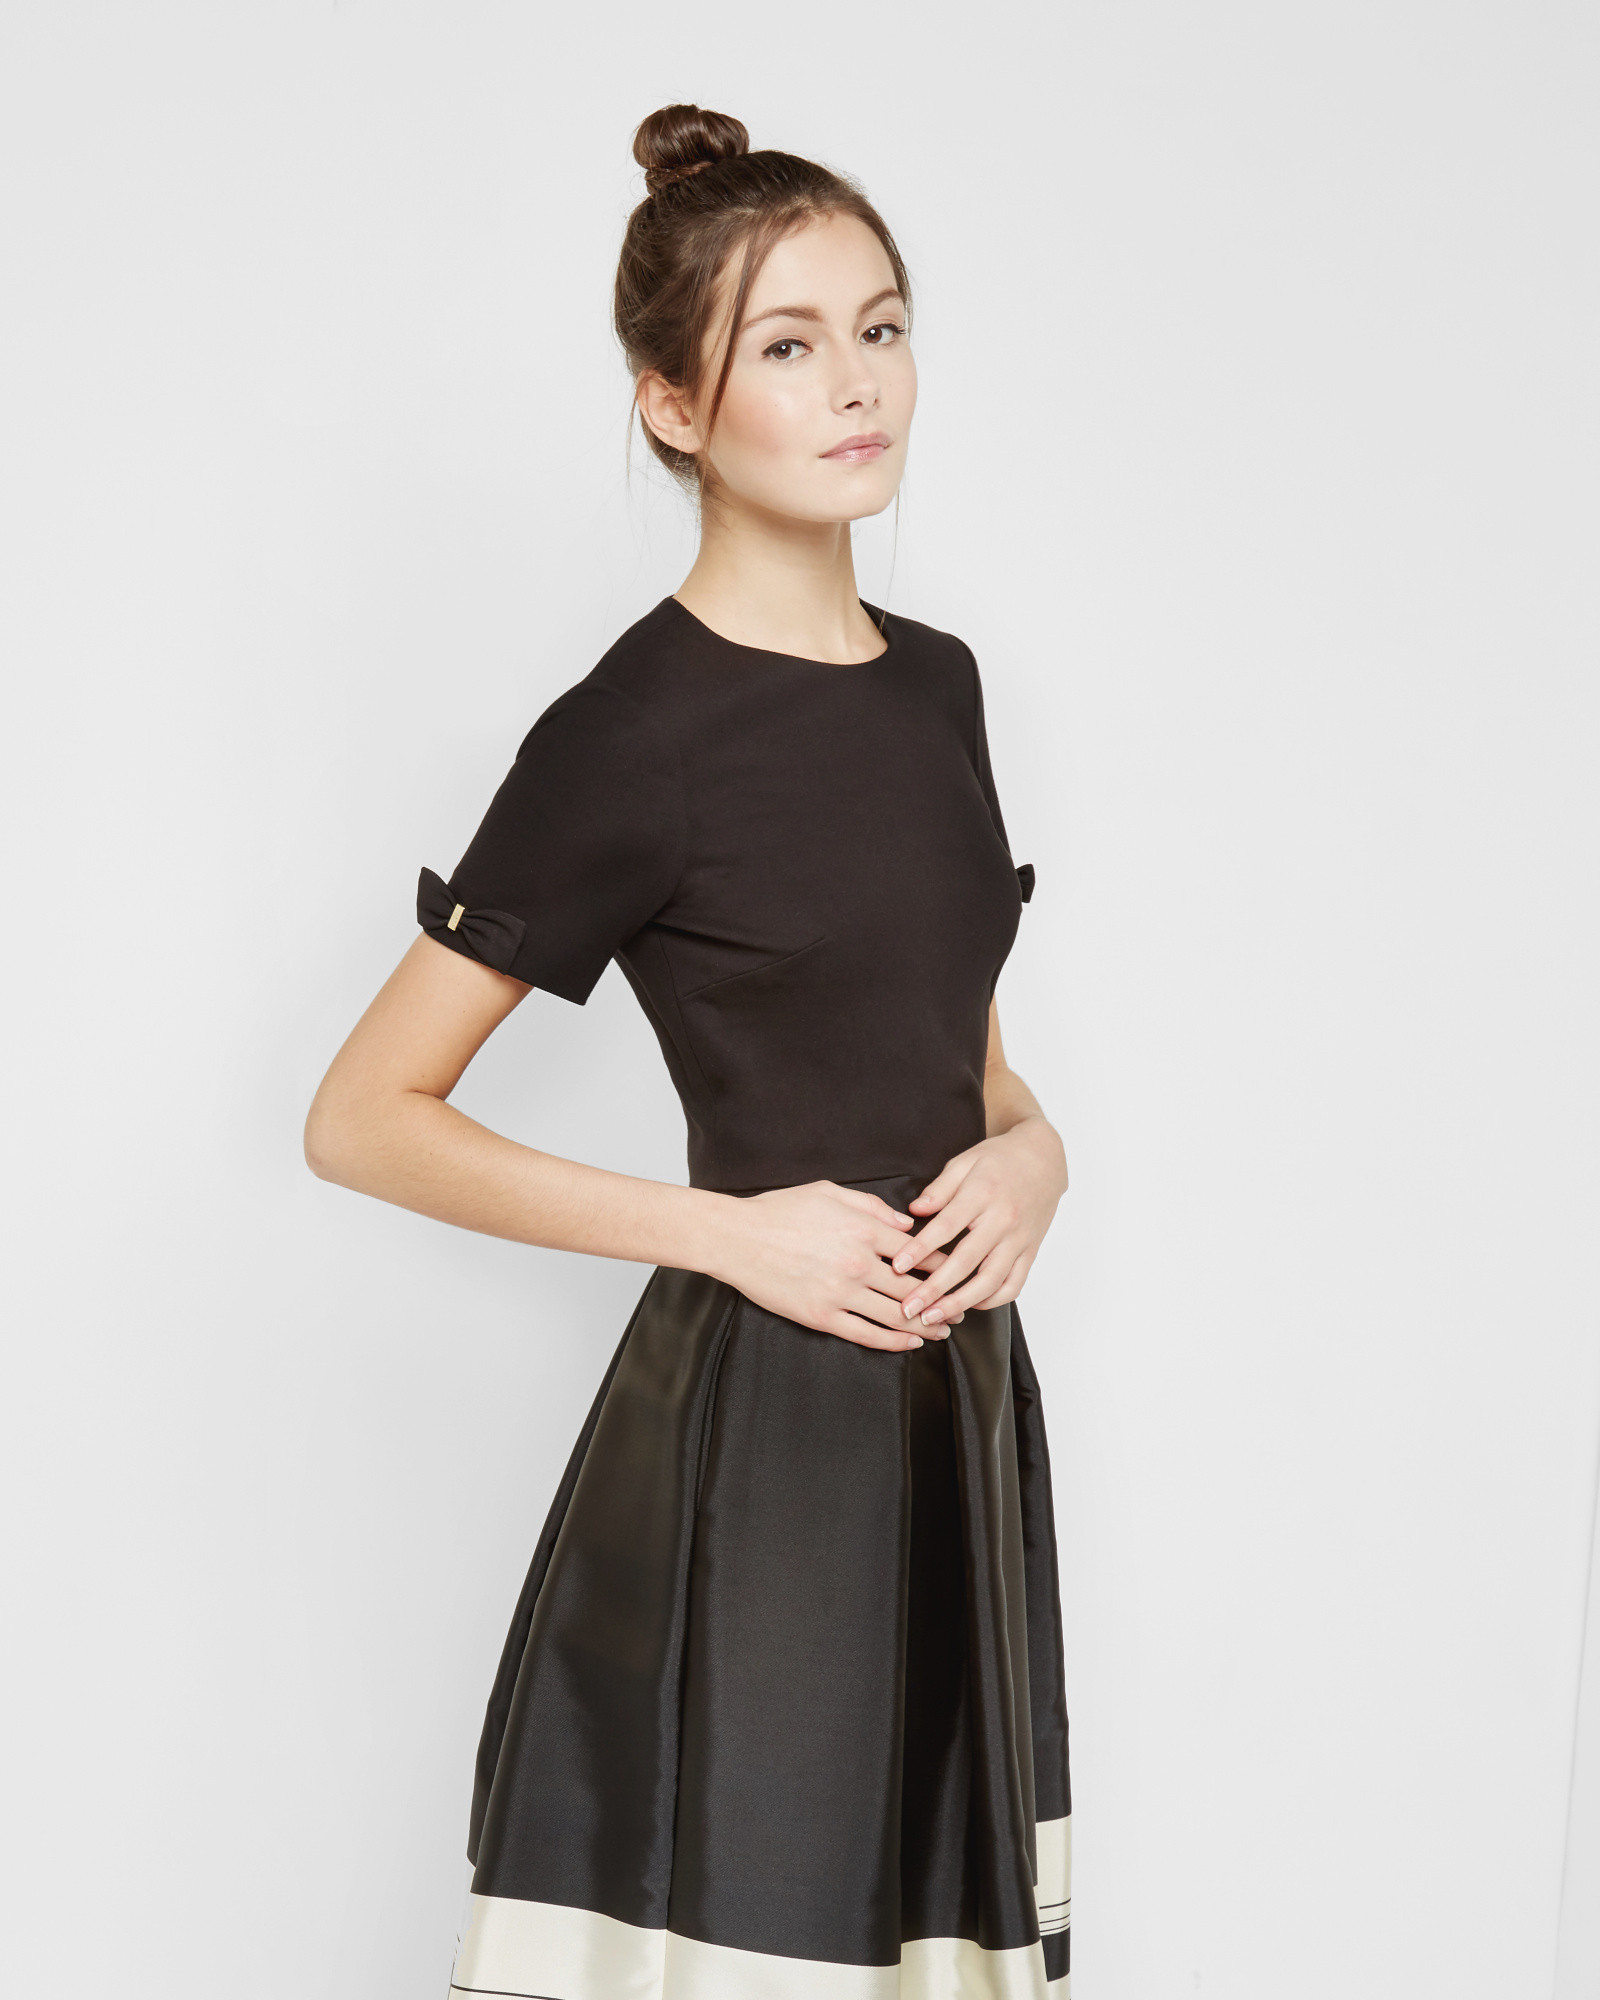 162045ebad9ef1 Ted baker bow detail cropped top in black lyst jpg 1600x2000 Ted baker  cropped top